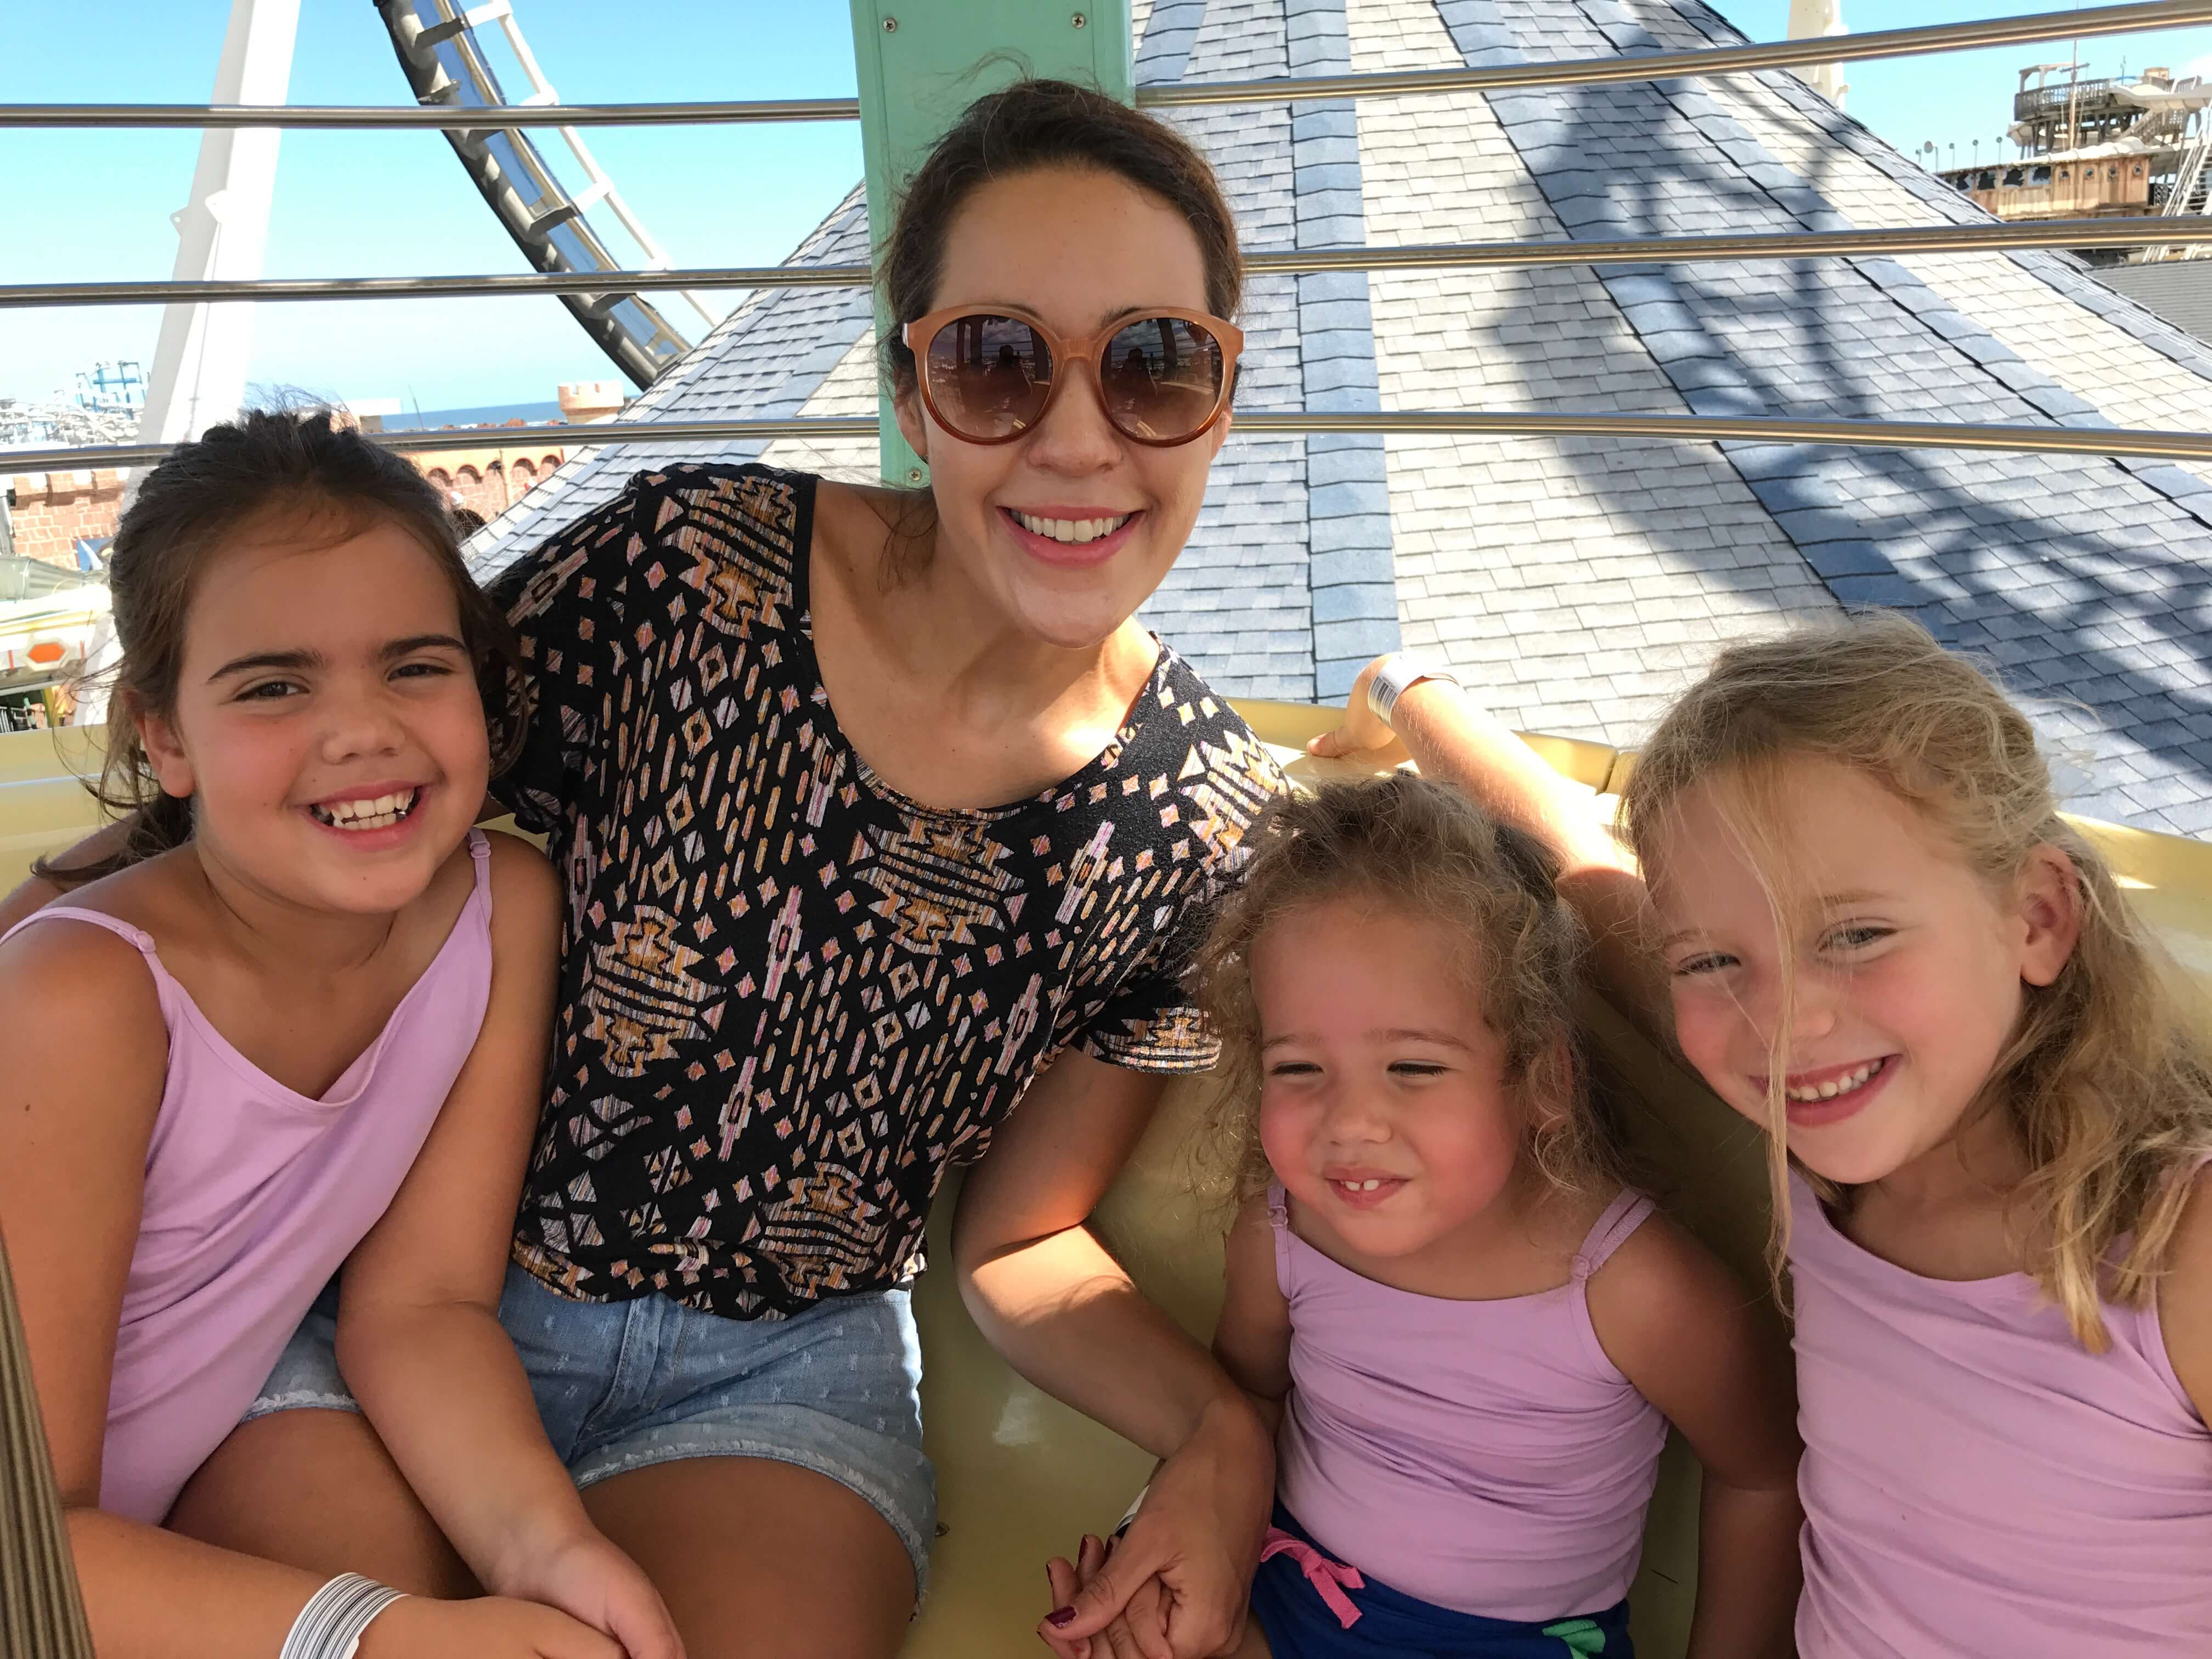 Fall Fun at Morey's Piers